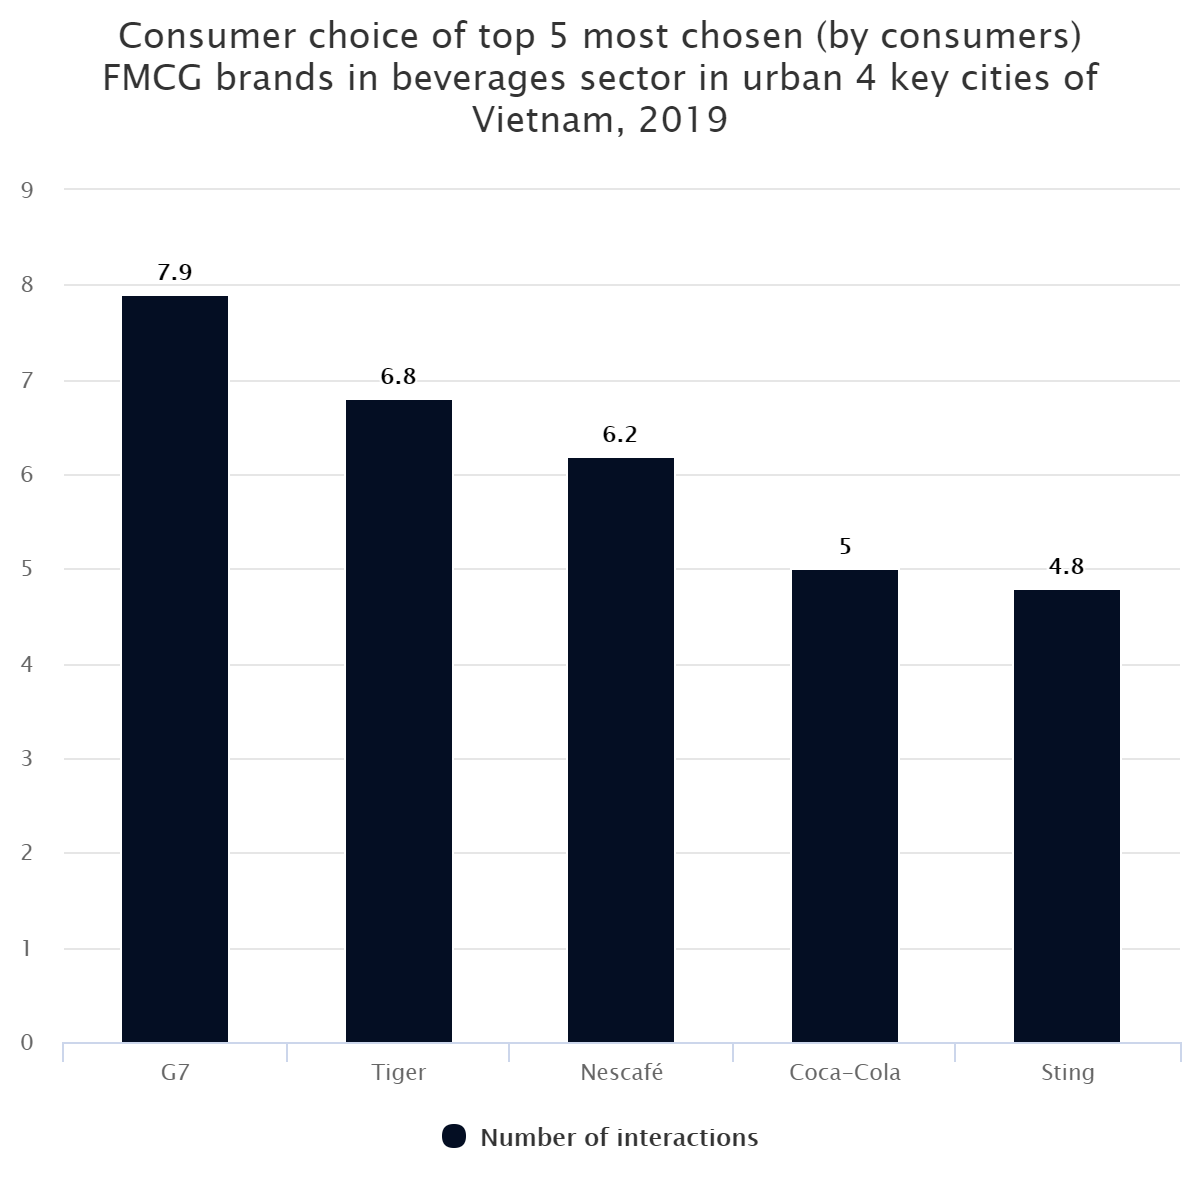 Consumer choice of top 5 most chosen (by consumers) FMCG brands in beverages sector in urban 4 key cities of Vietnam, 2019